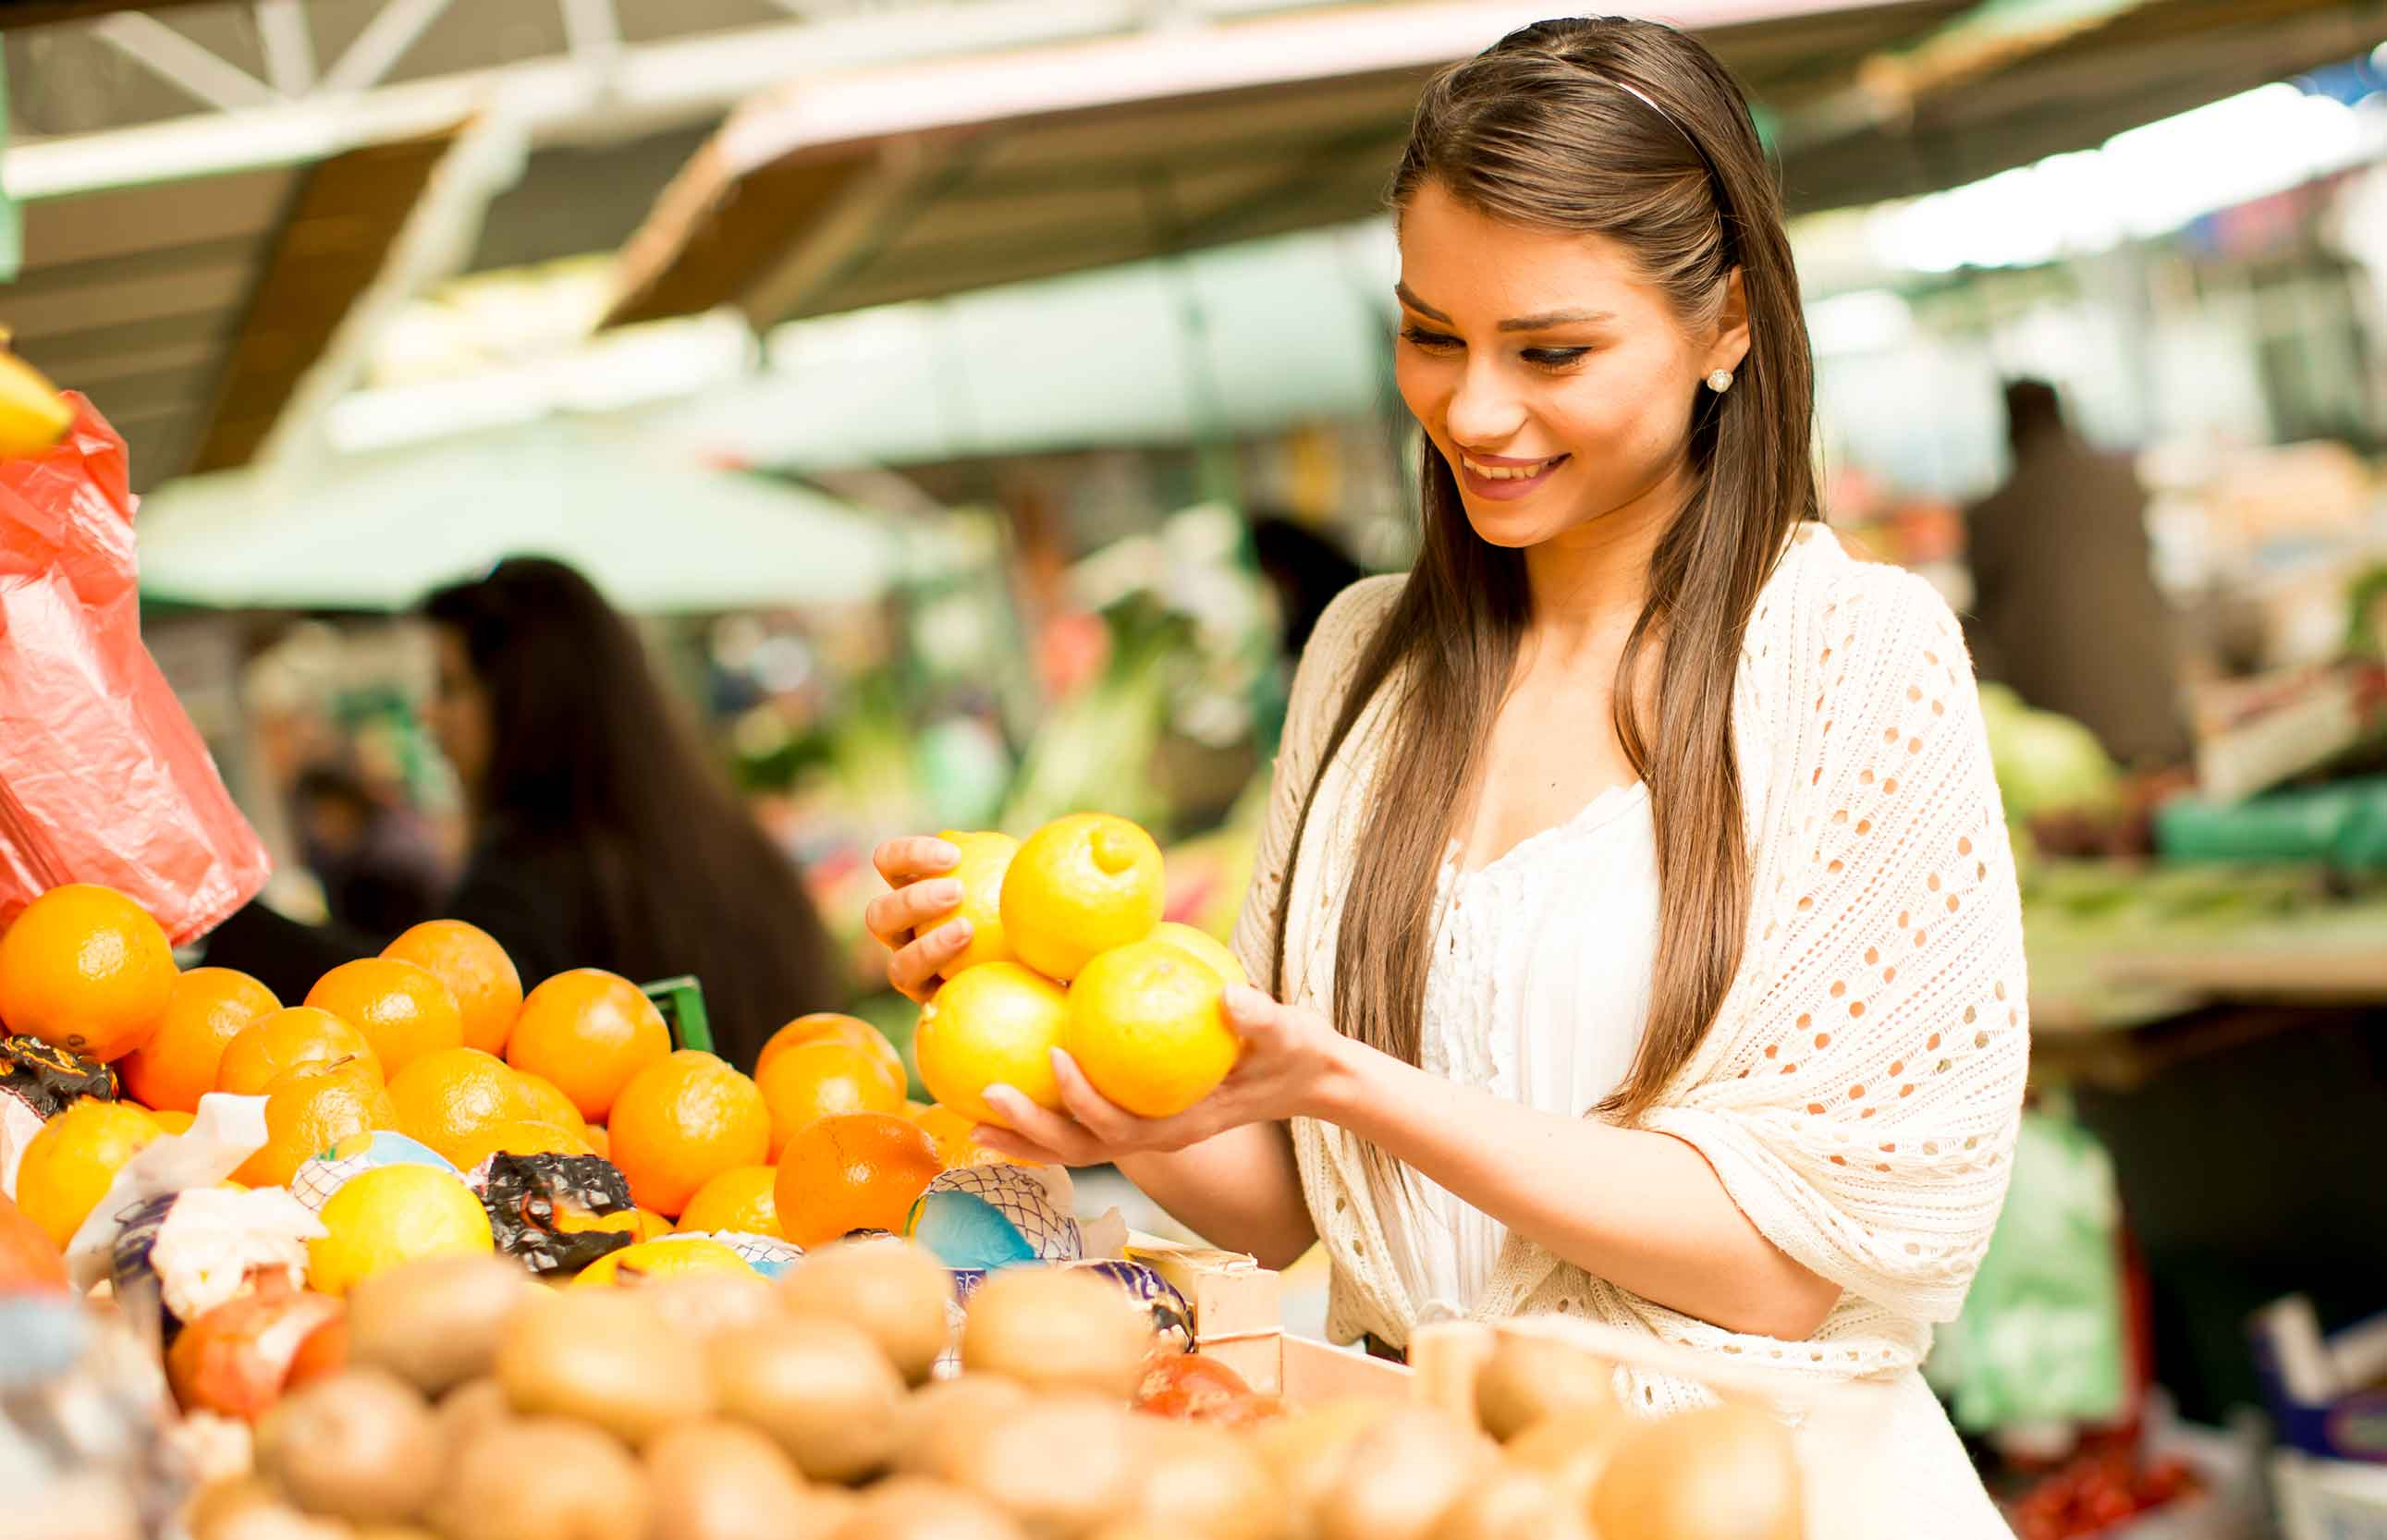 No more wasting food or money! A few smart strategies can make meals for one affordable and simple.